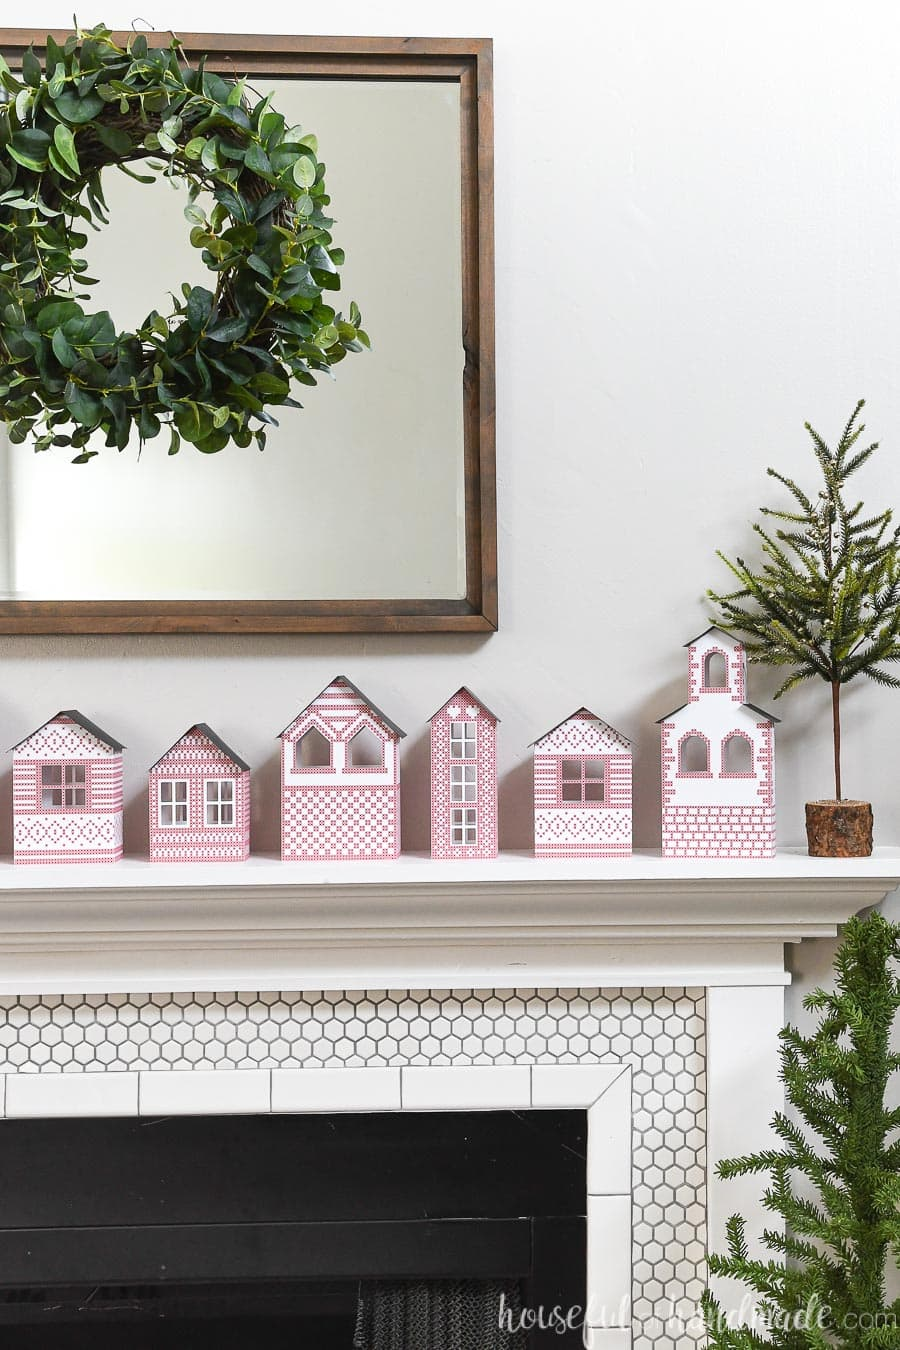 Five different designs on paper Christmas houses sitting on the mantle.